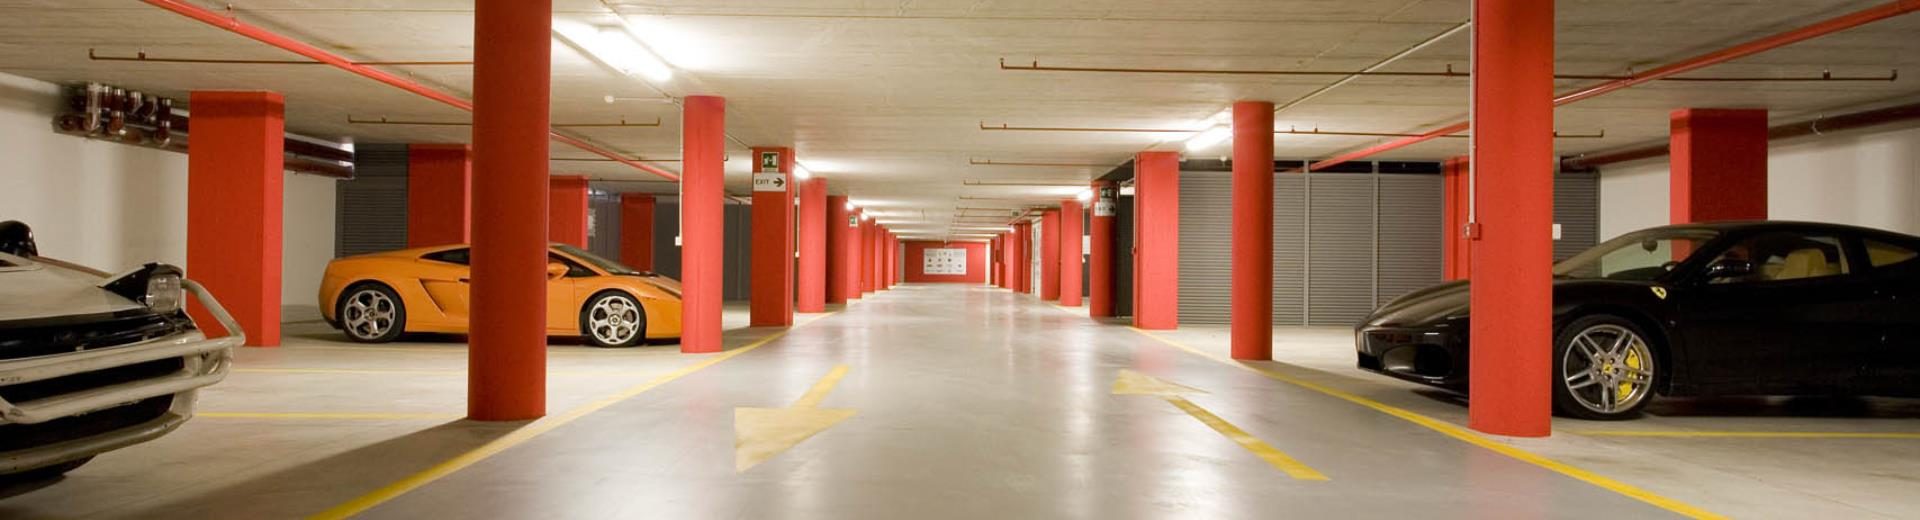 Get free garage parking Plus Hotel Galileo''s for your stay in Padua